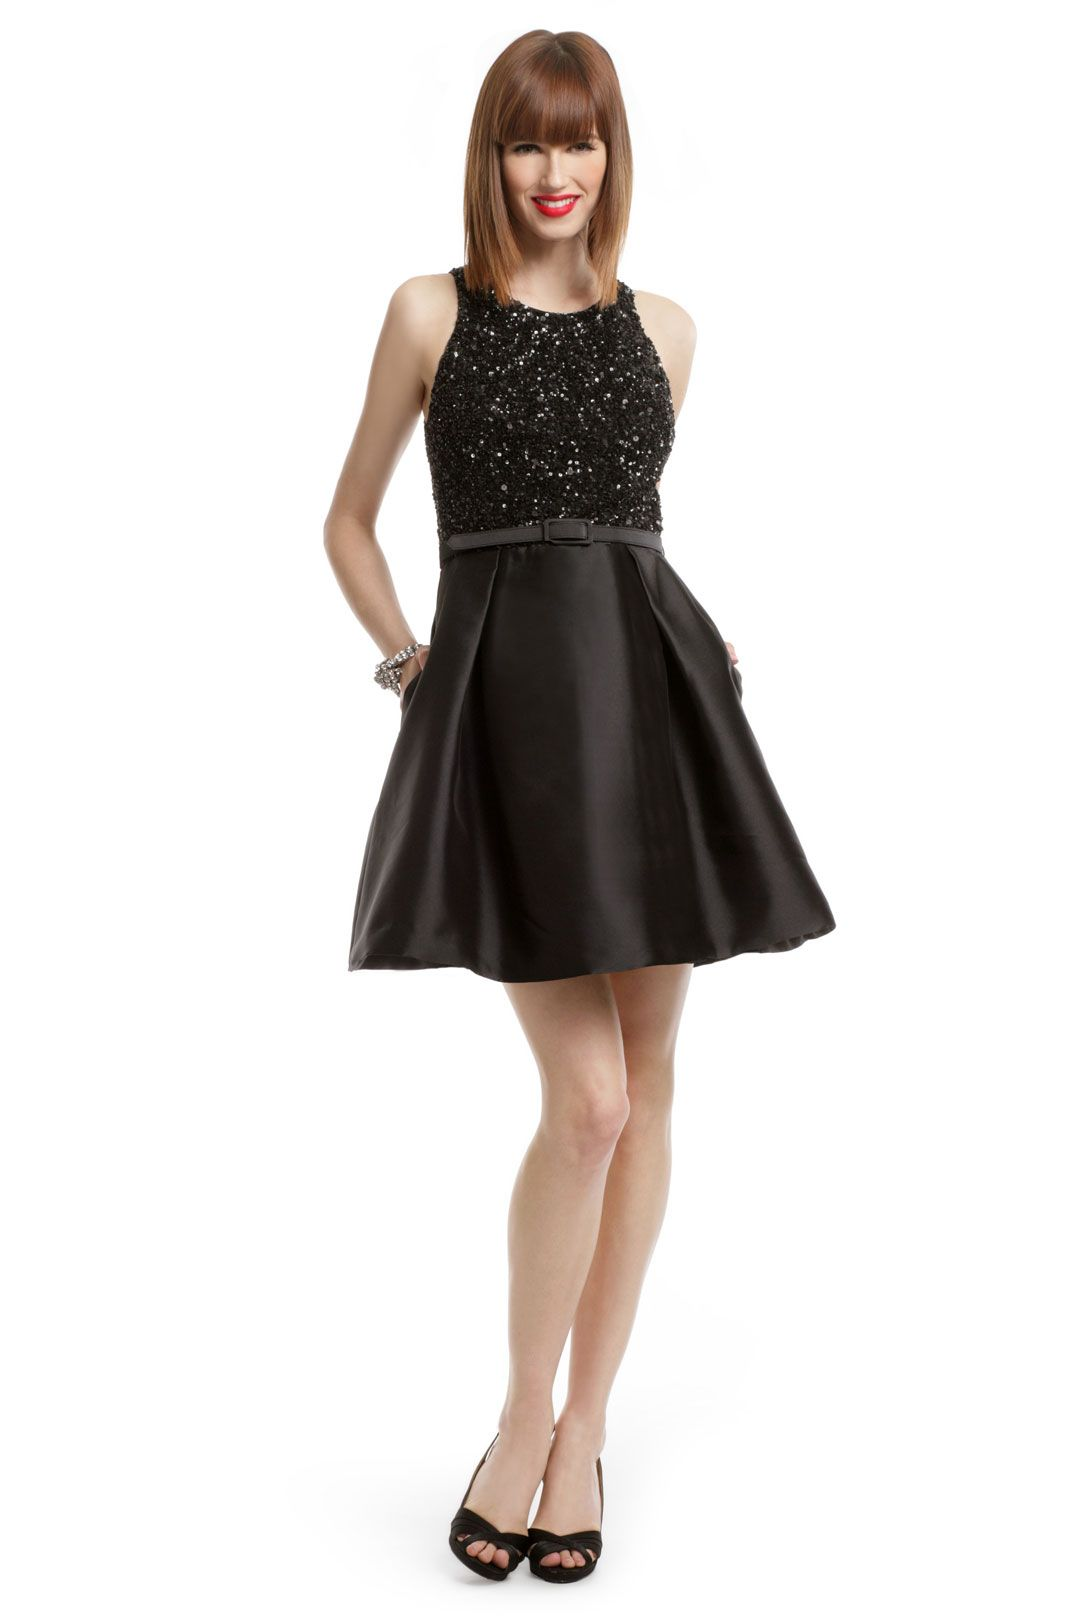 Old+Hollywood+Dresses | Old Hollywood Sequin Dress by Theia at $100 ...